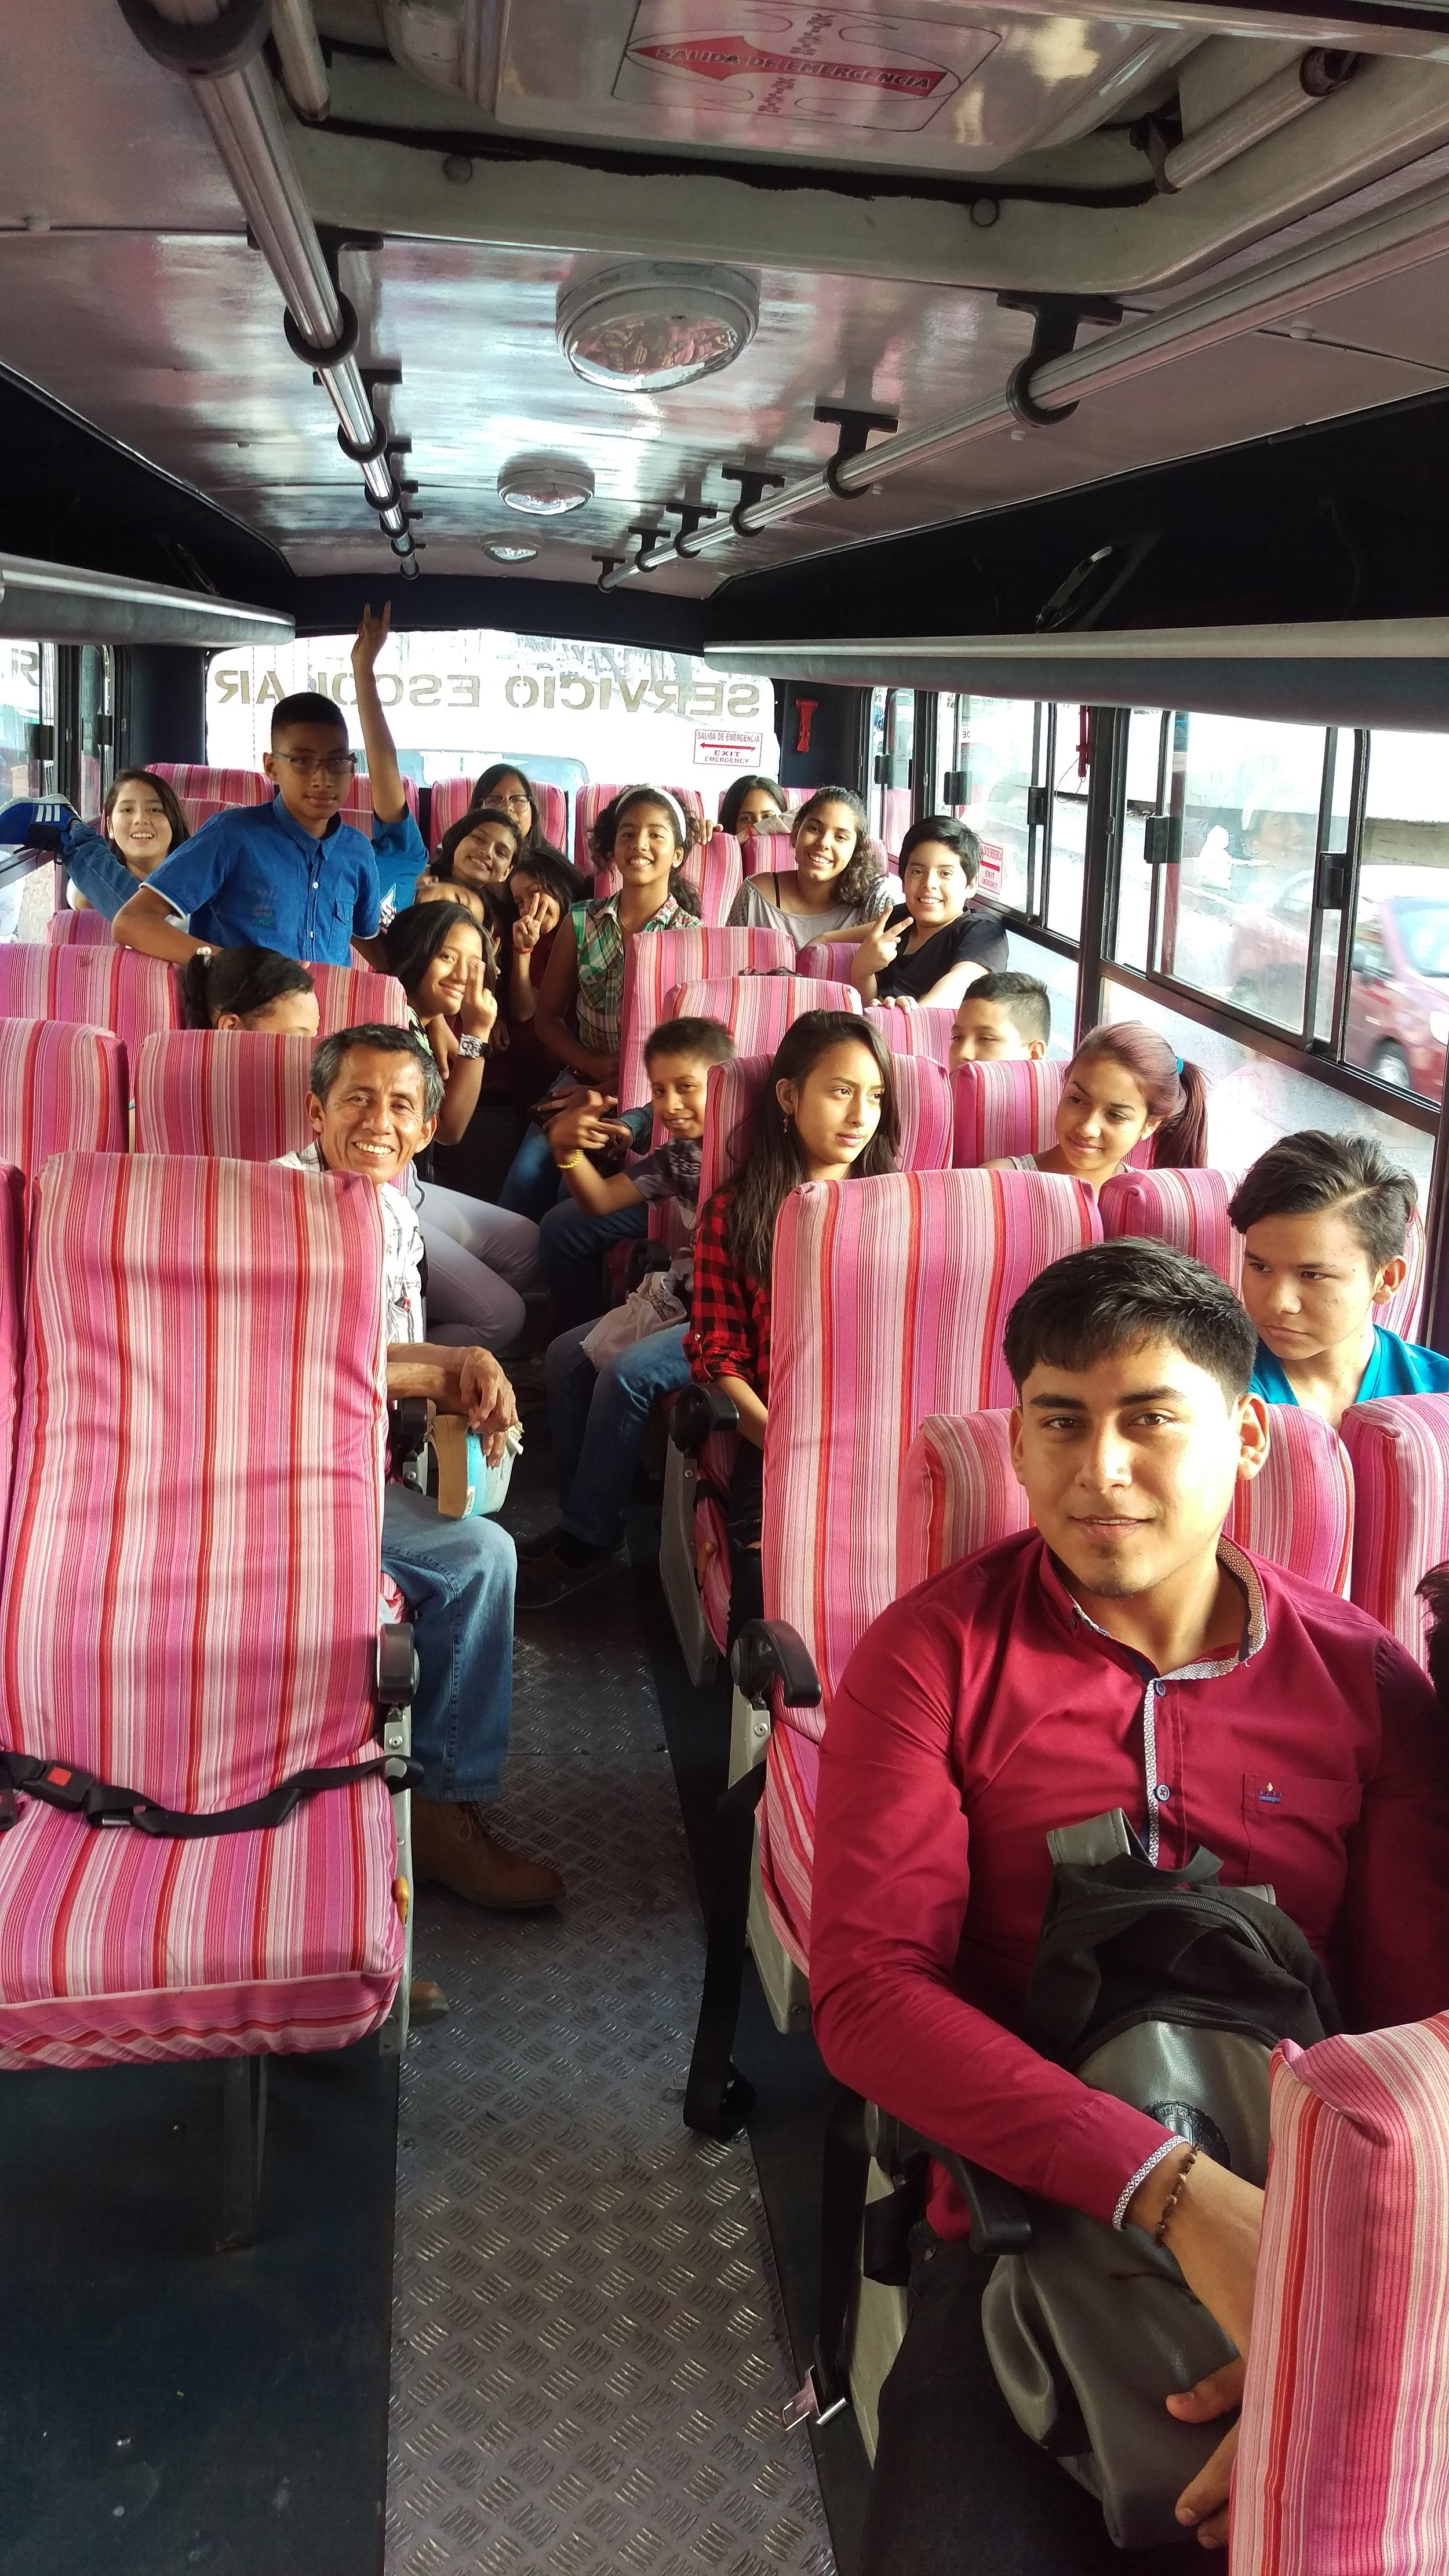 The youth group on their way to the conference.